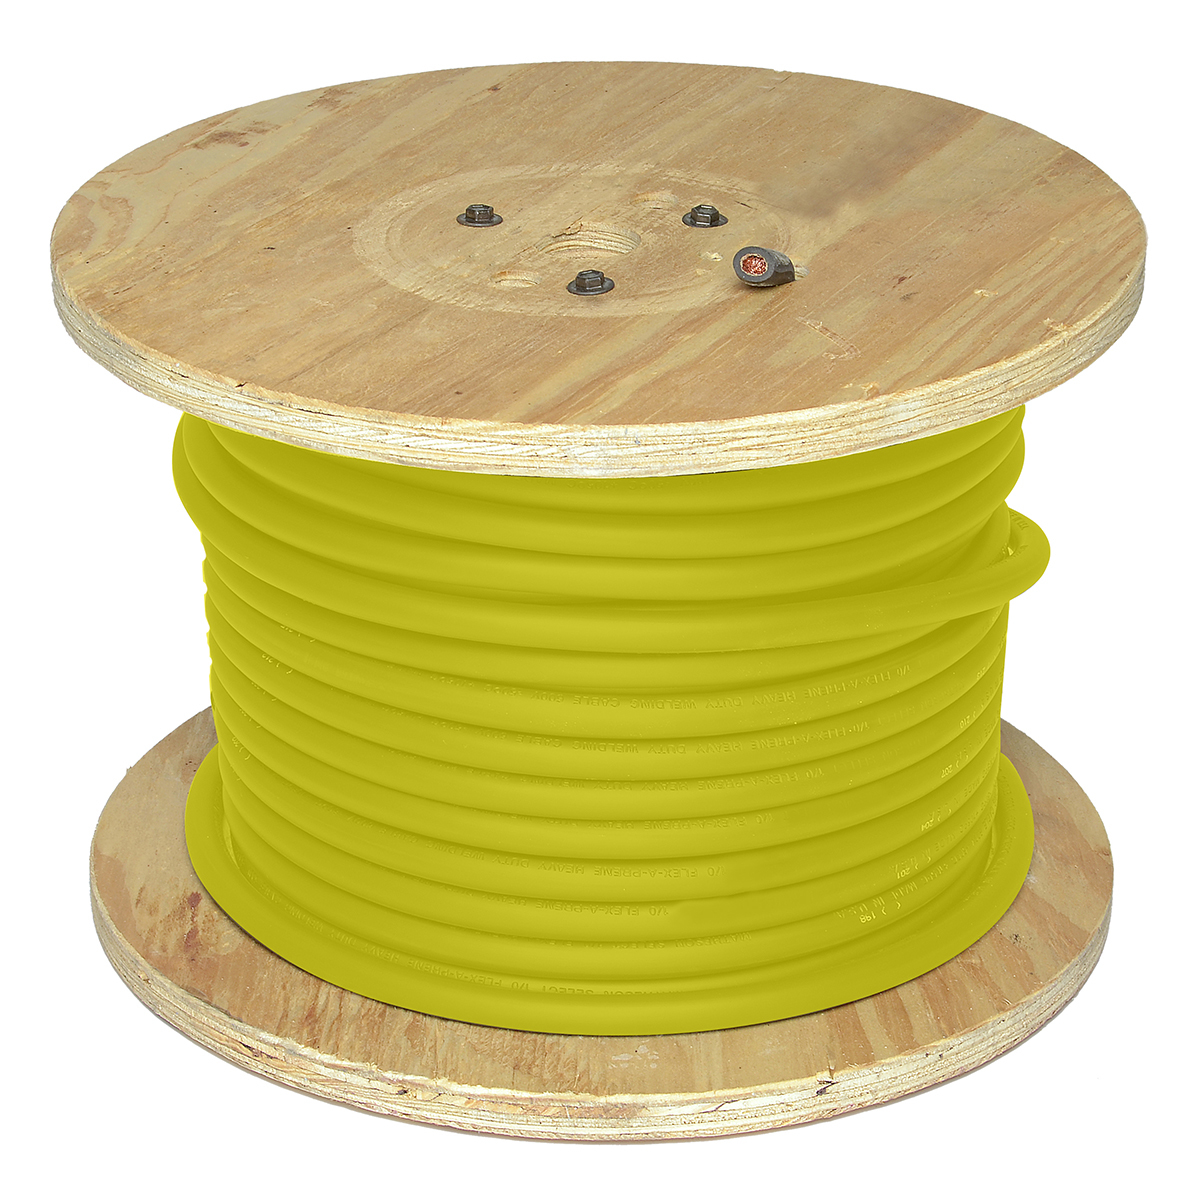 Airgas dirfp1 250yw direct wire cable 1 yellow flex a prene direct wire cable 1 yellow flex a prene welding cable 250 greentooth Image collections